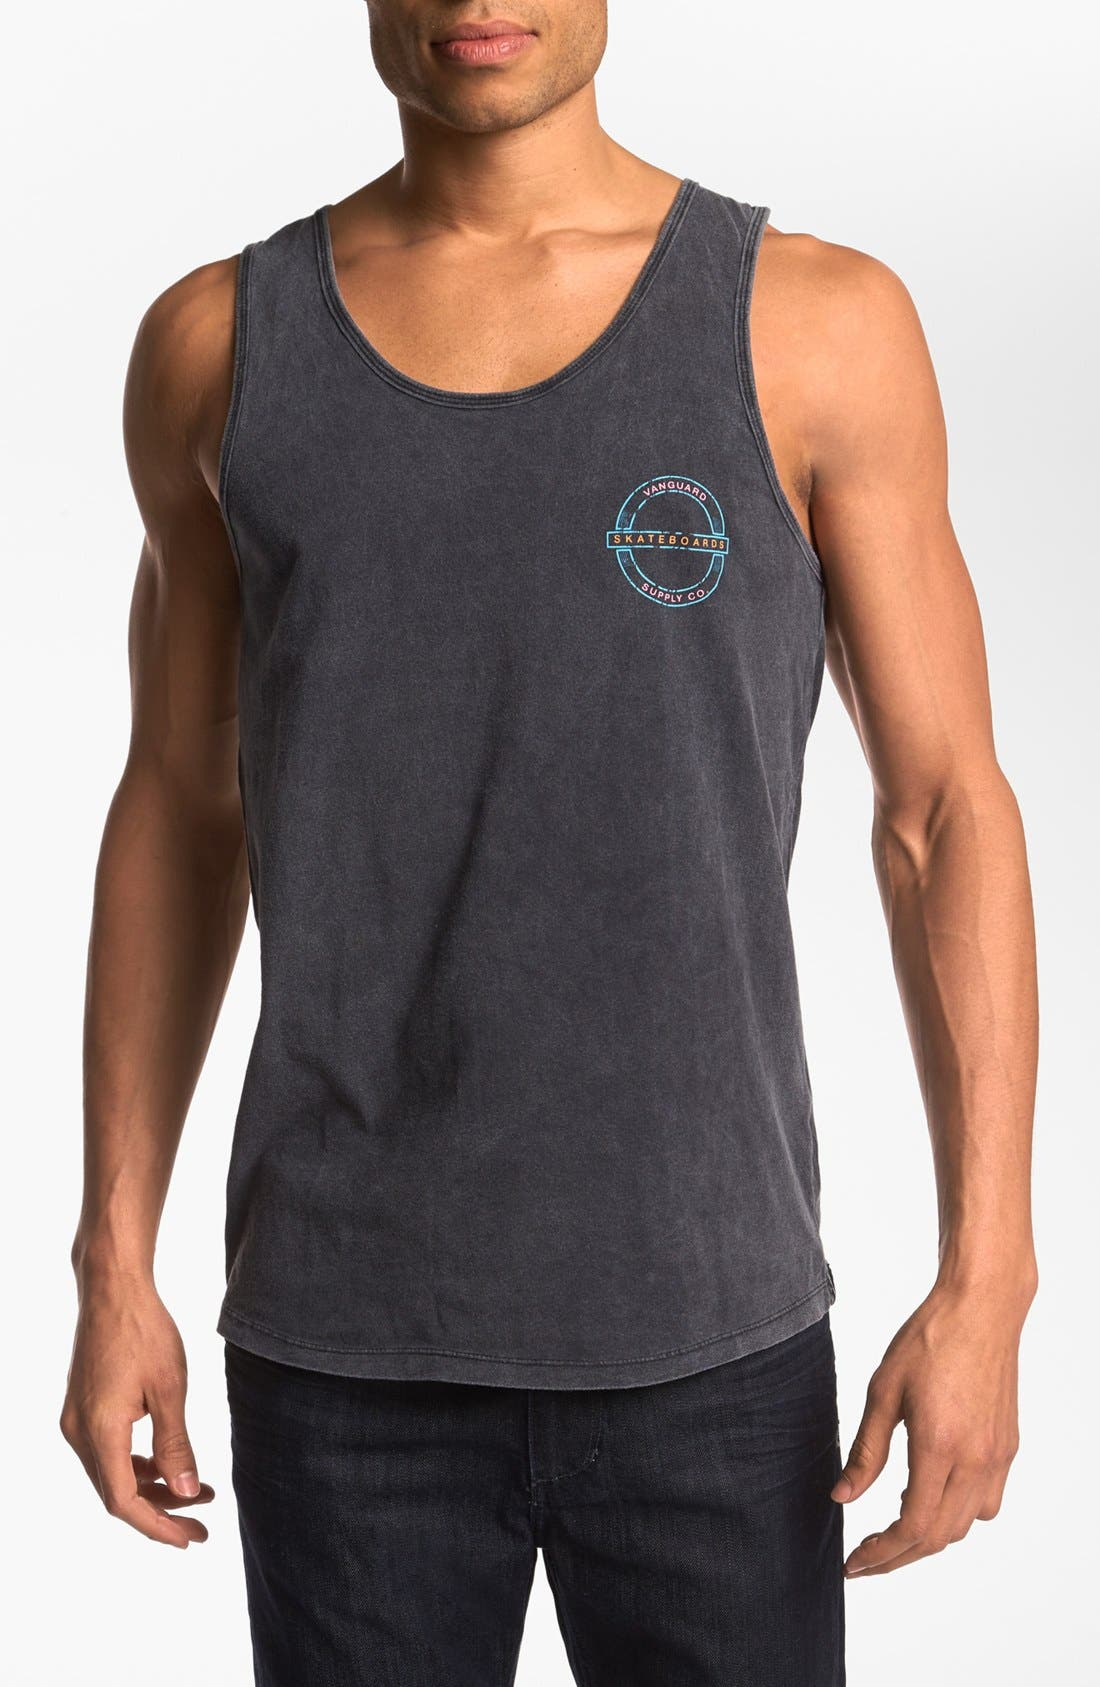 Alternate Image 1 Selected - Vanguard 'Skate Supply' Tank Top